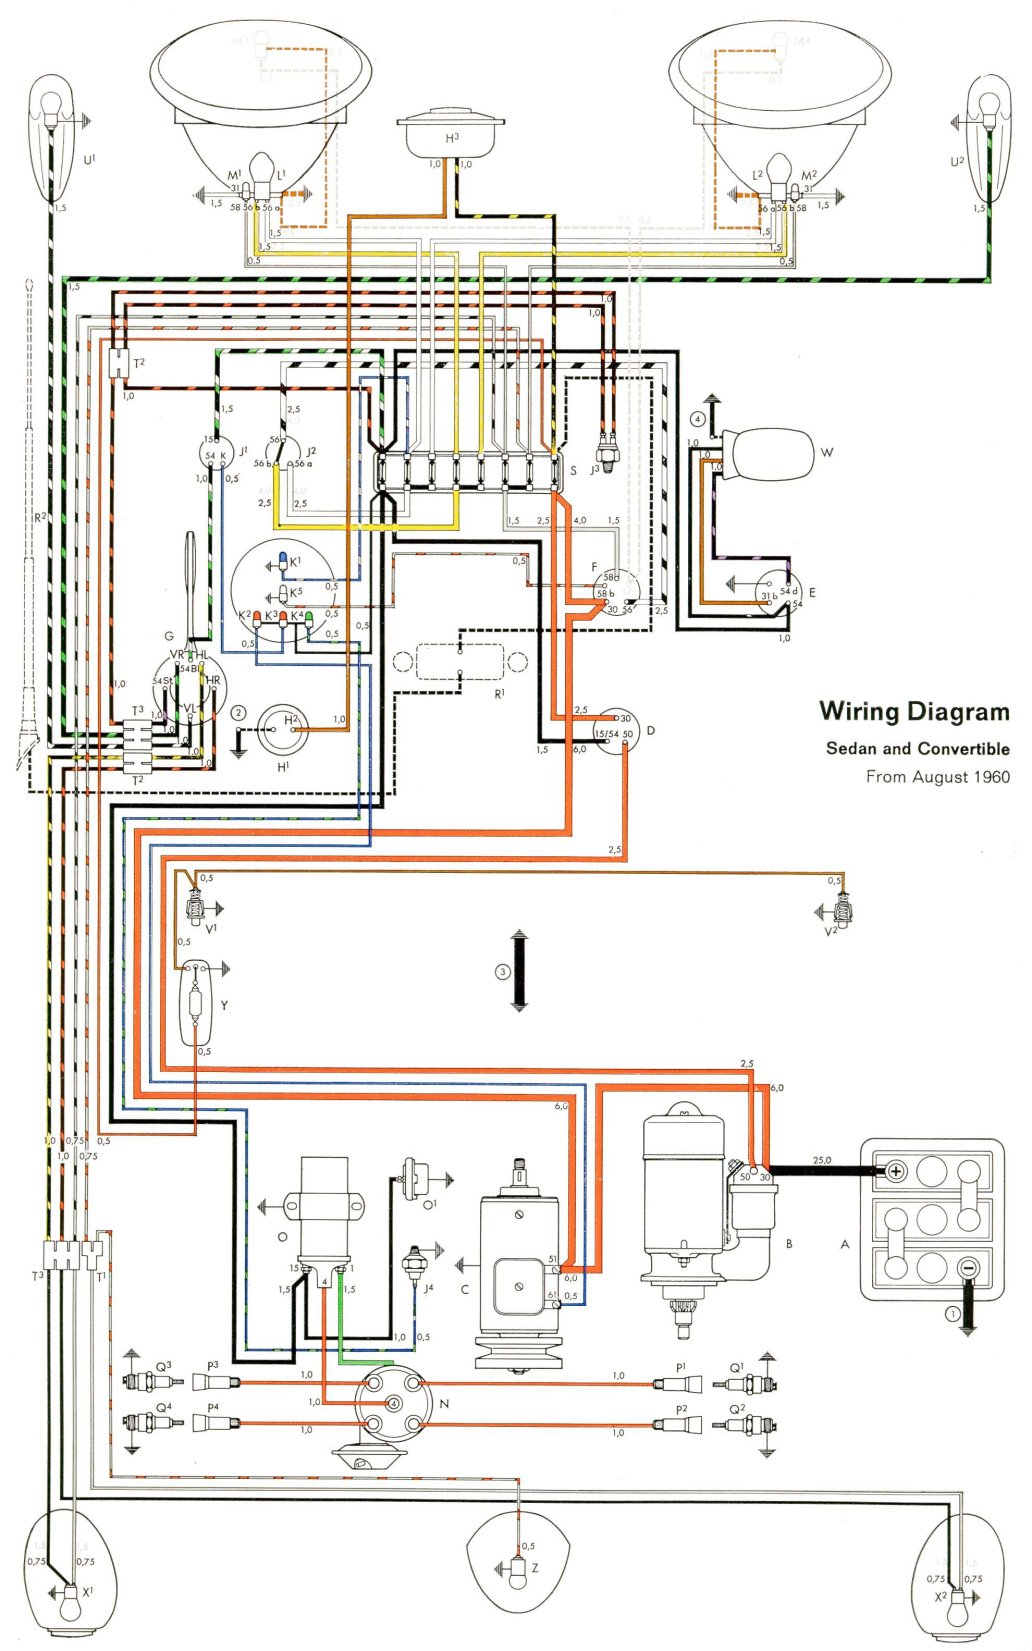 bug_61 1961 beetle wiring diagram thegoldenbug com 1971 vw beetle wiring diagram at nearapp.co